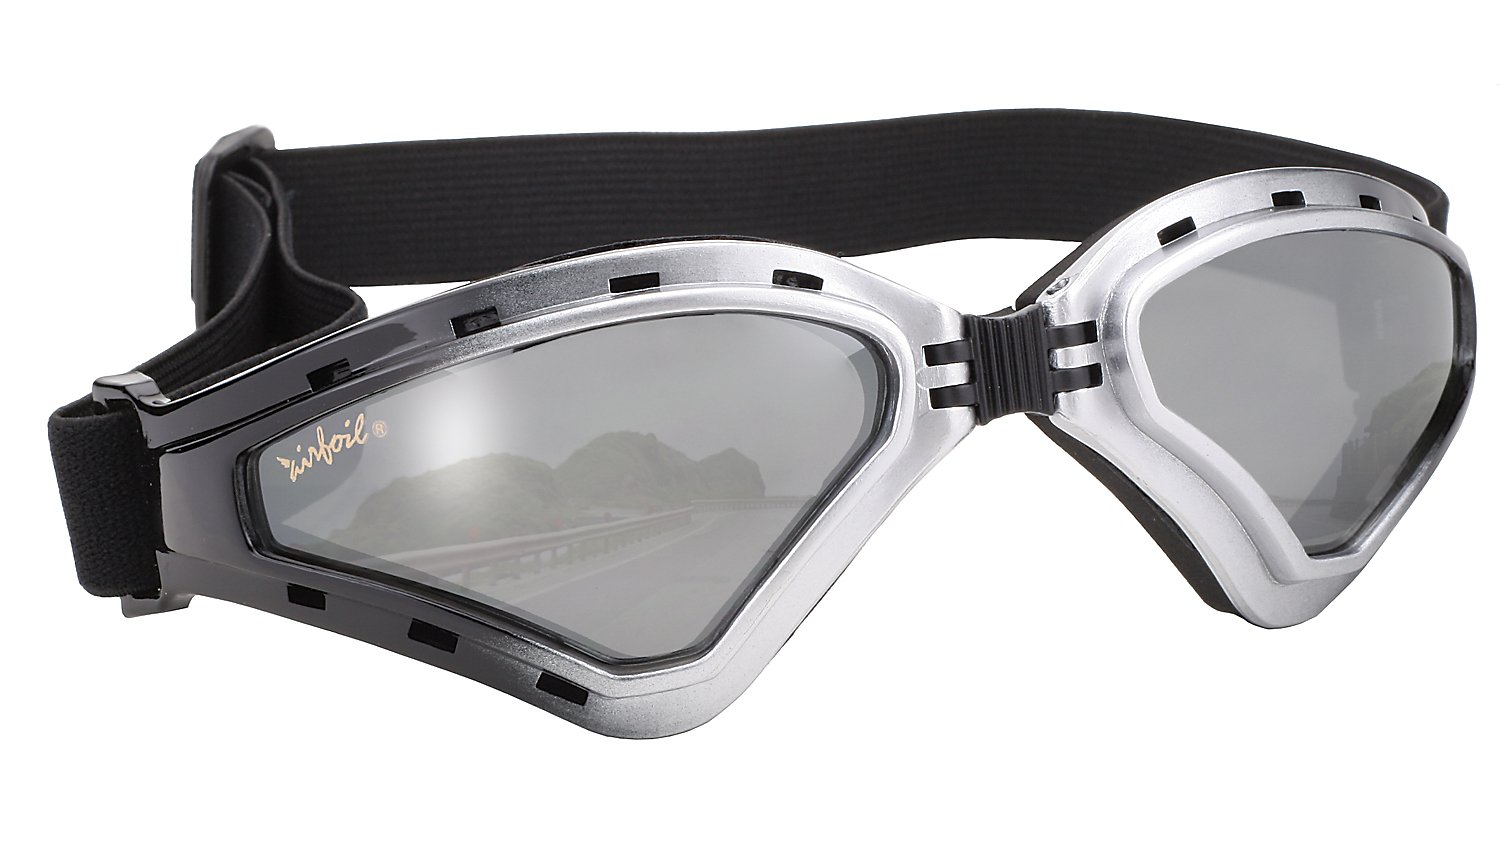 Pacific Coast Airfoil Goggles (Chrome Frame/Silver Mirror Lens) Pacific Coast Sunglasses Inc. 8010